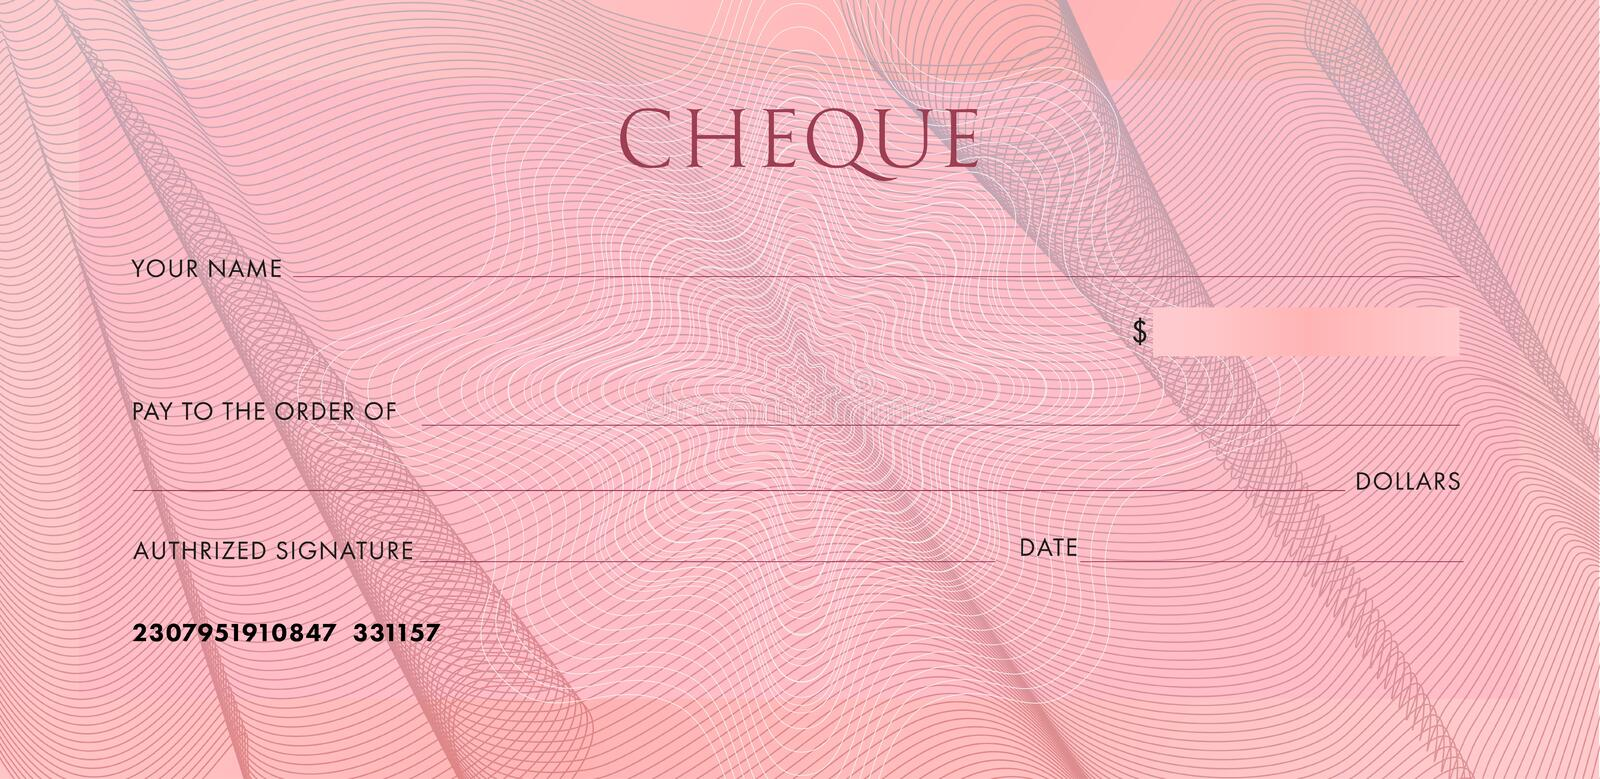 Check template, Chequebook template. Blank pink business bank cheque with guilloche pattern cloth folds and abstract royalty free illustration